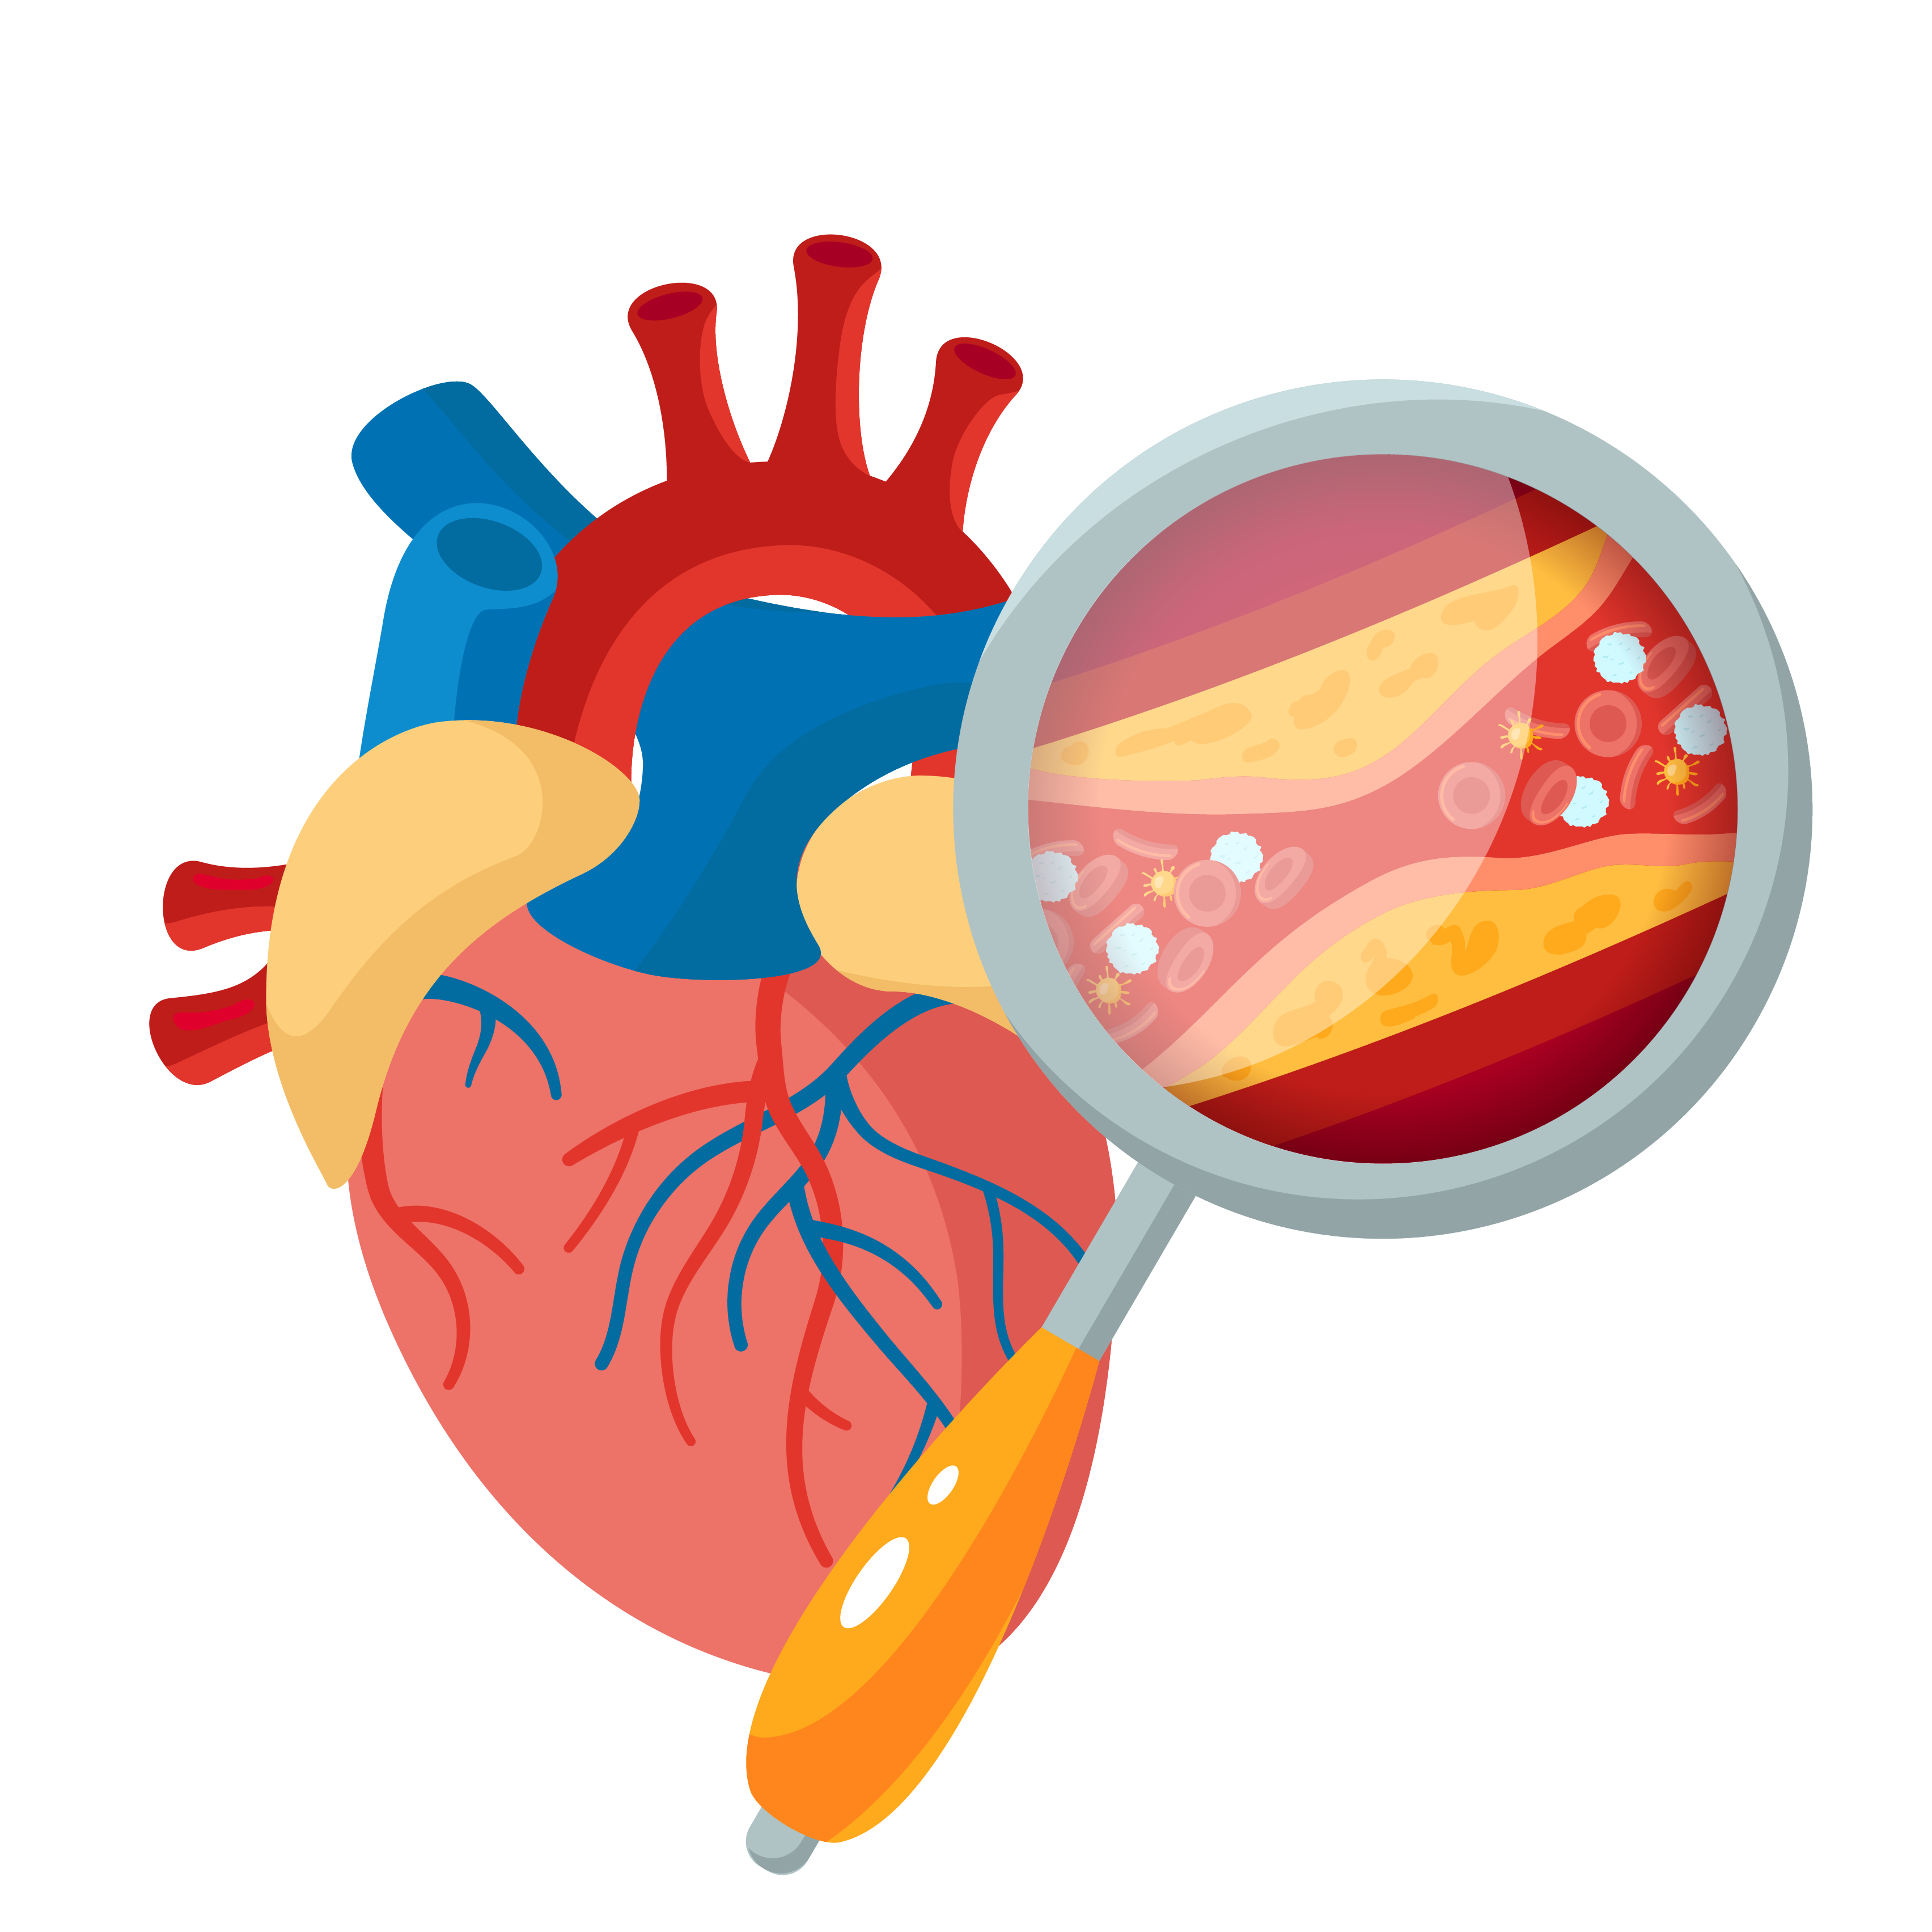 Blockage in arteries due to high cholesterol